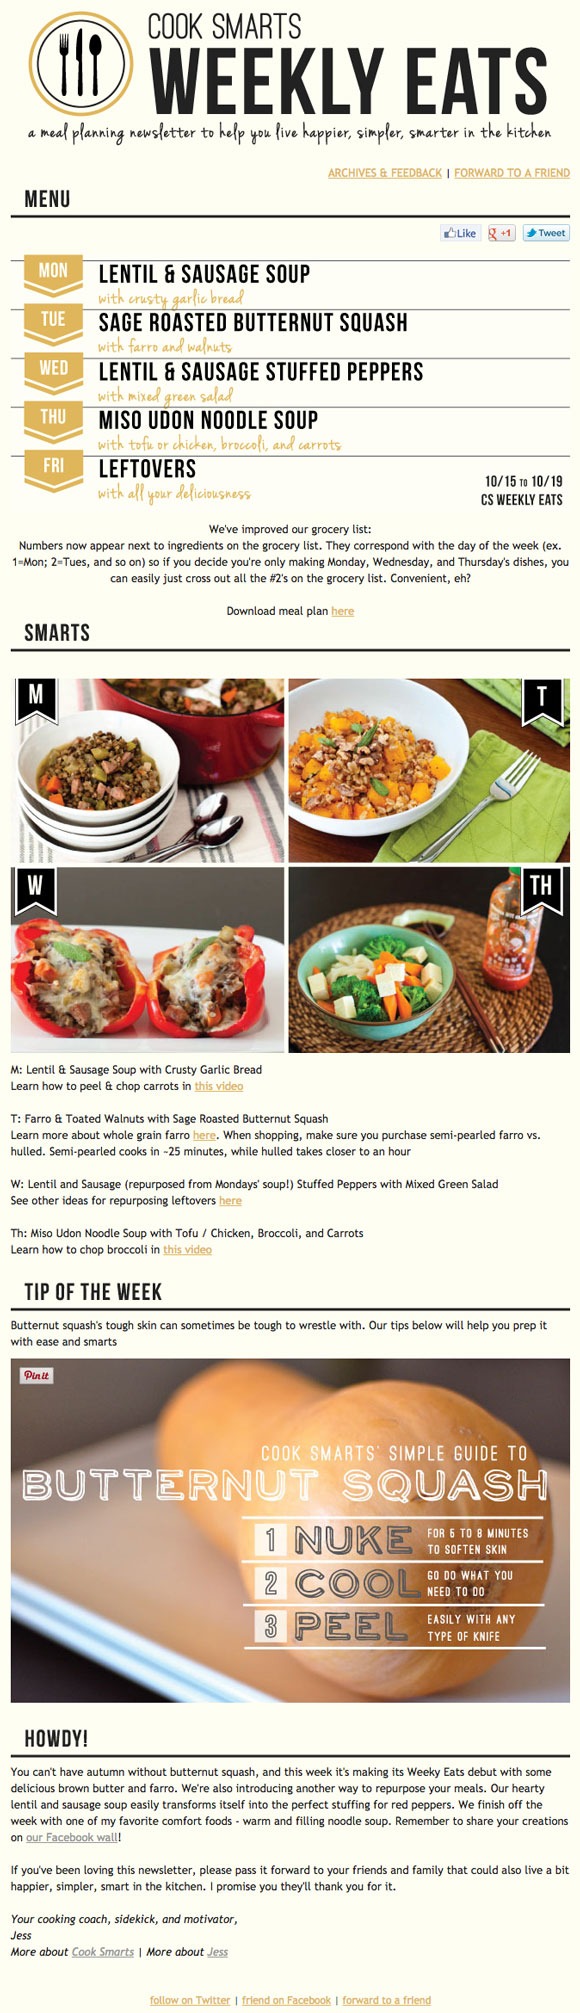 Email-Newsletter-Examples-cooksmart